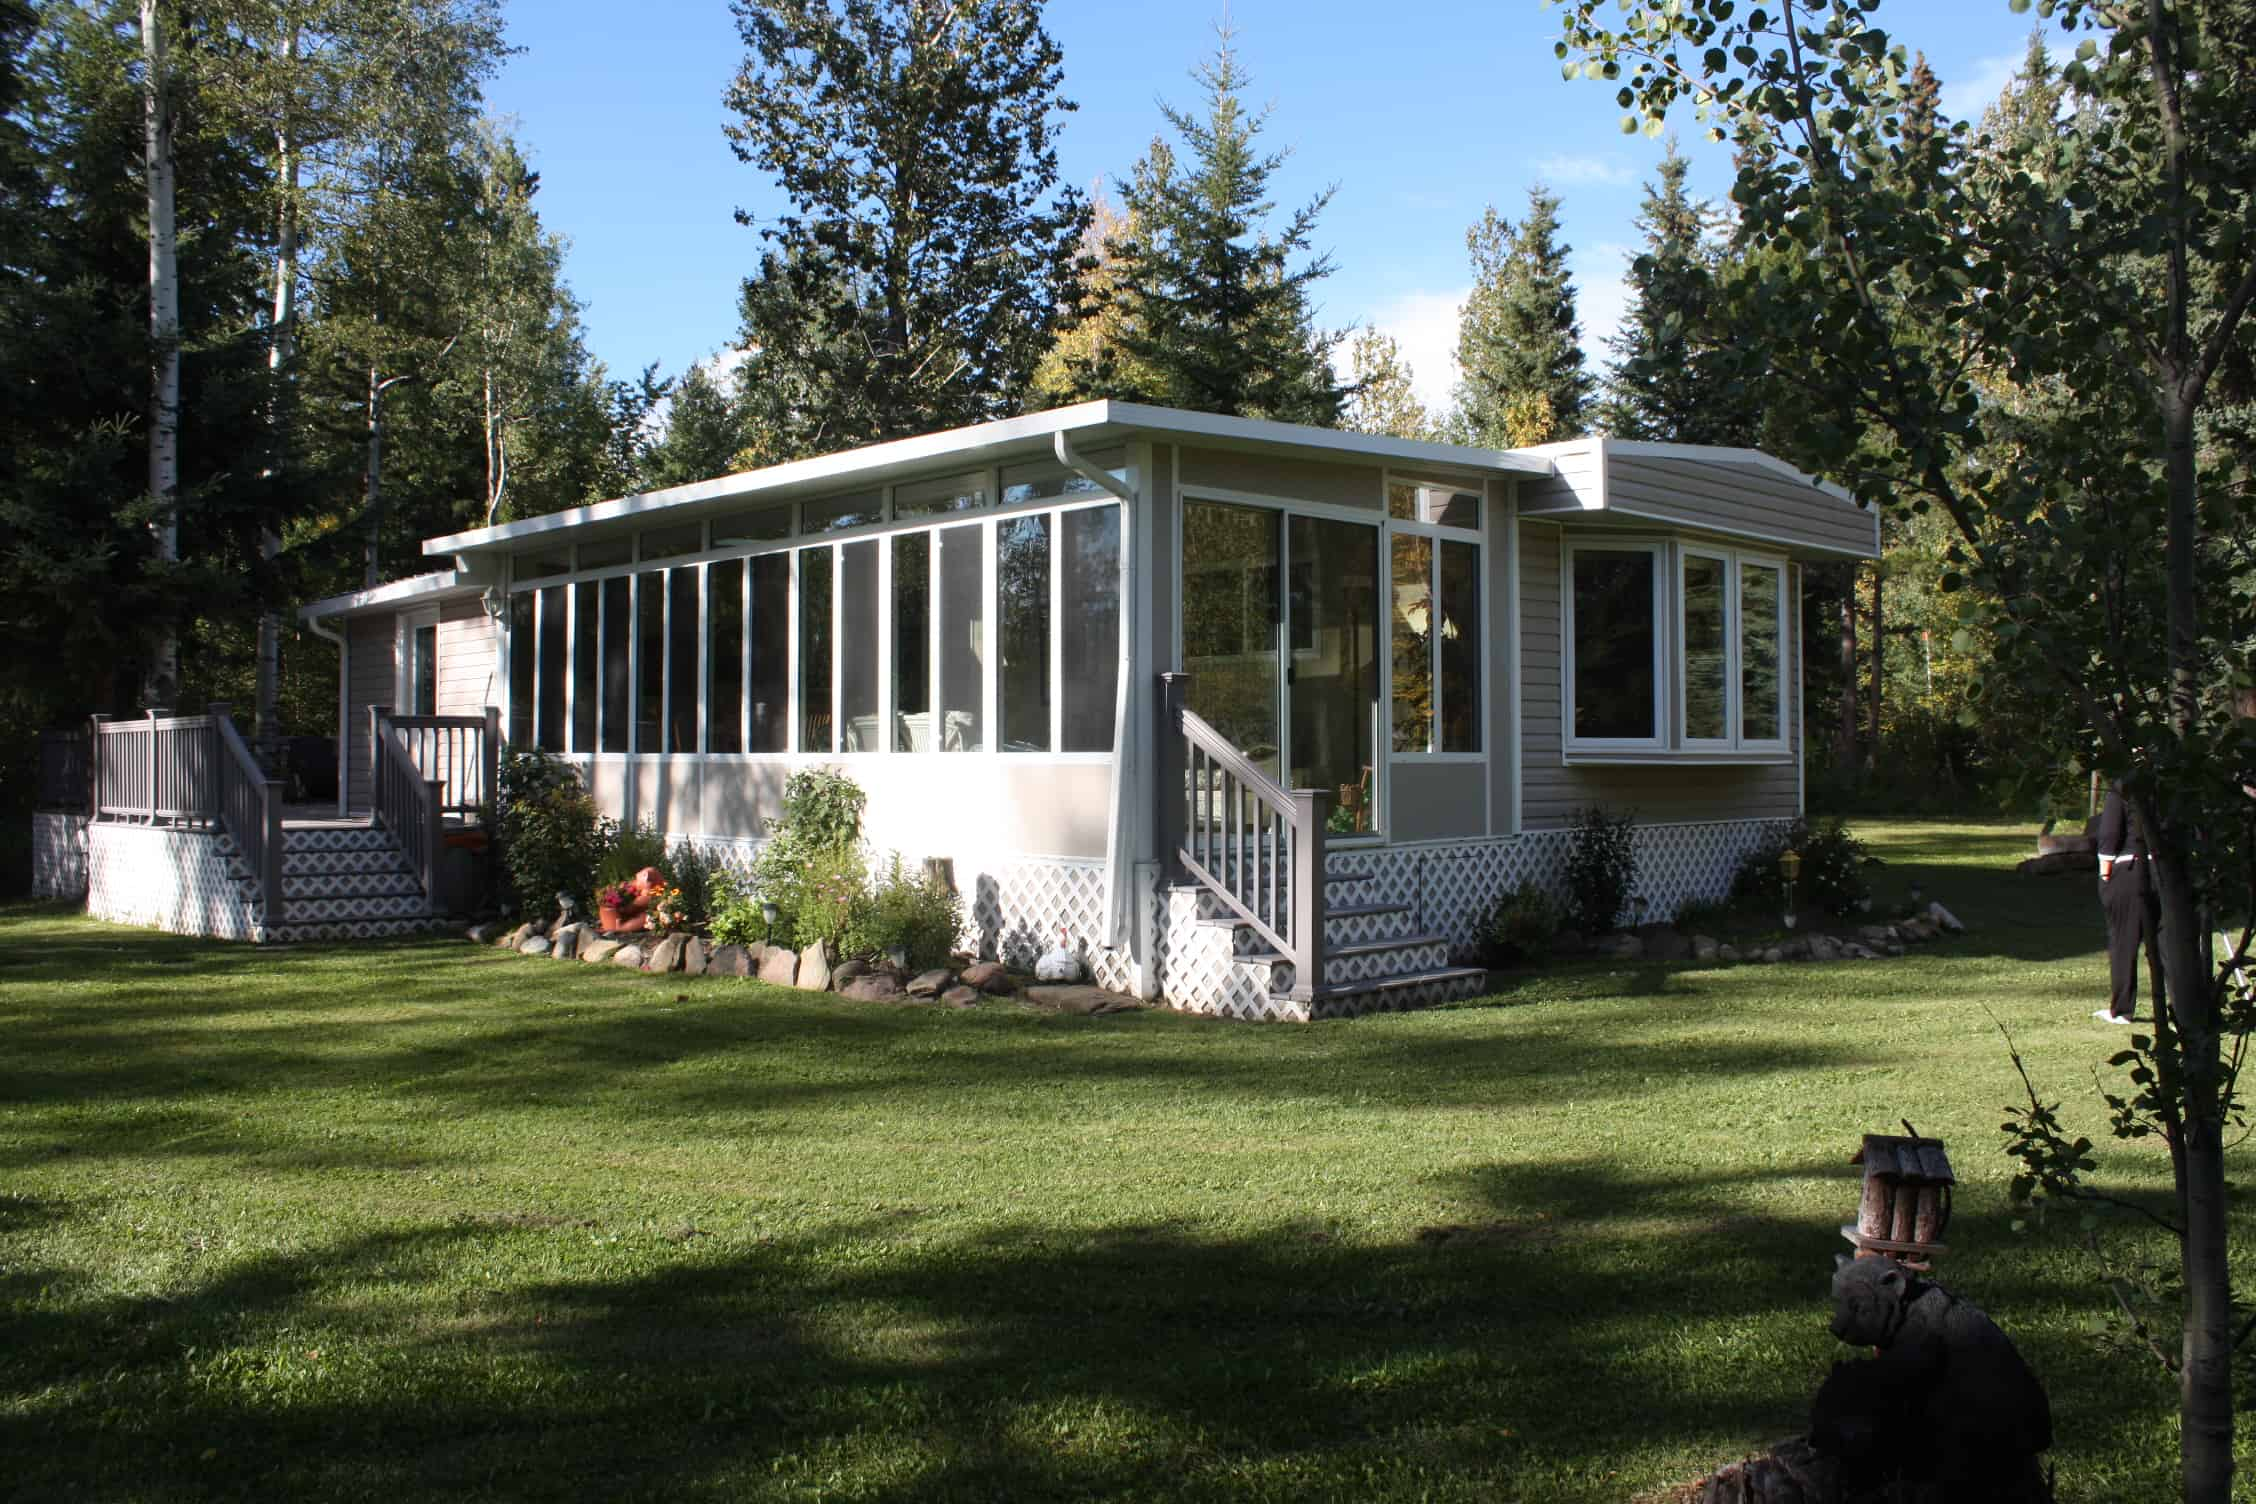 Park Model Trailer Sunrooms in Calgary